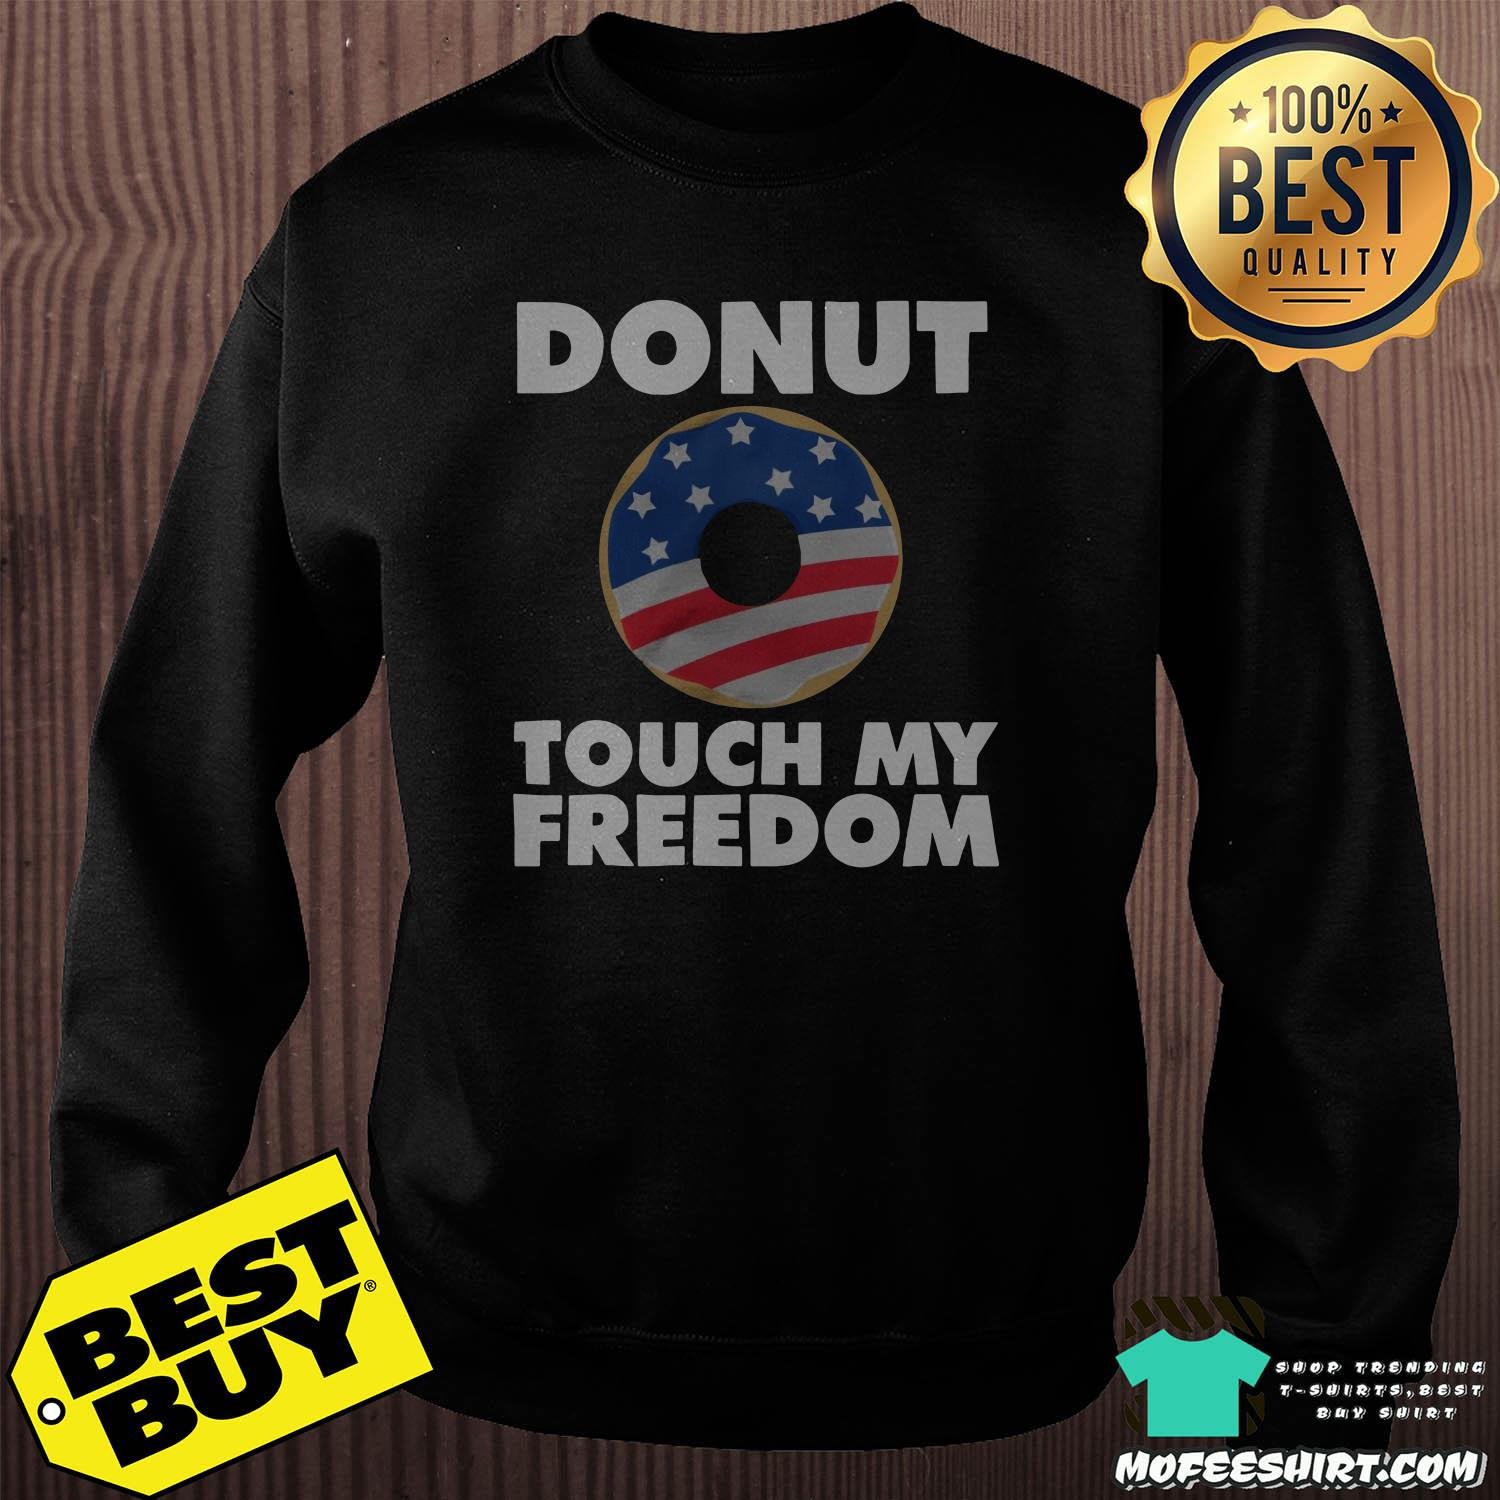 donut touch my freedom america flag 4th of july sweatshirt - Donut touch my Freedom America Flag 4th Of July shirt